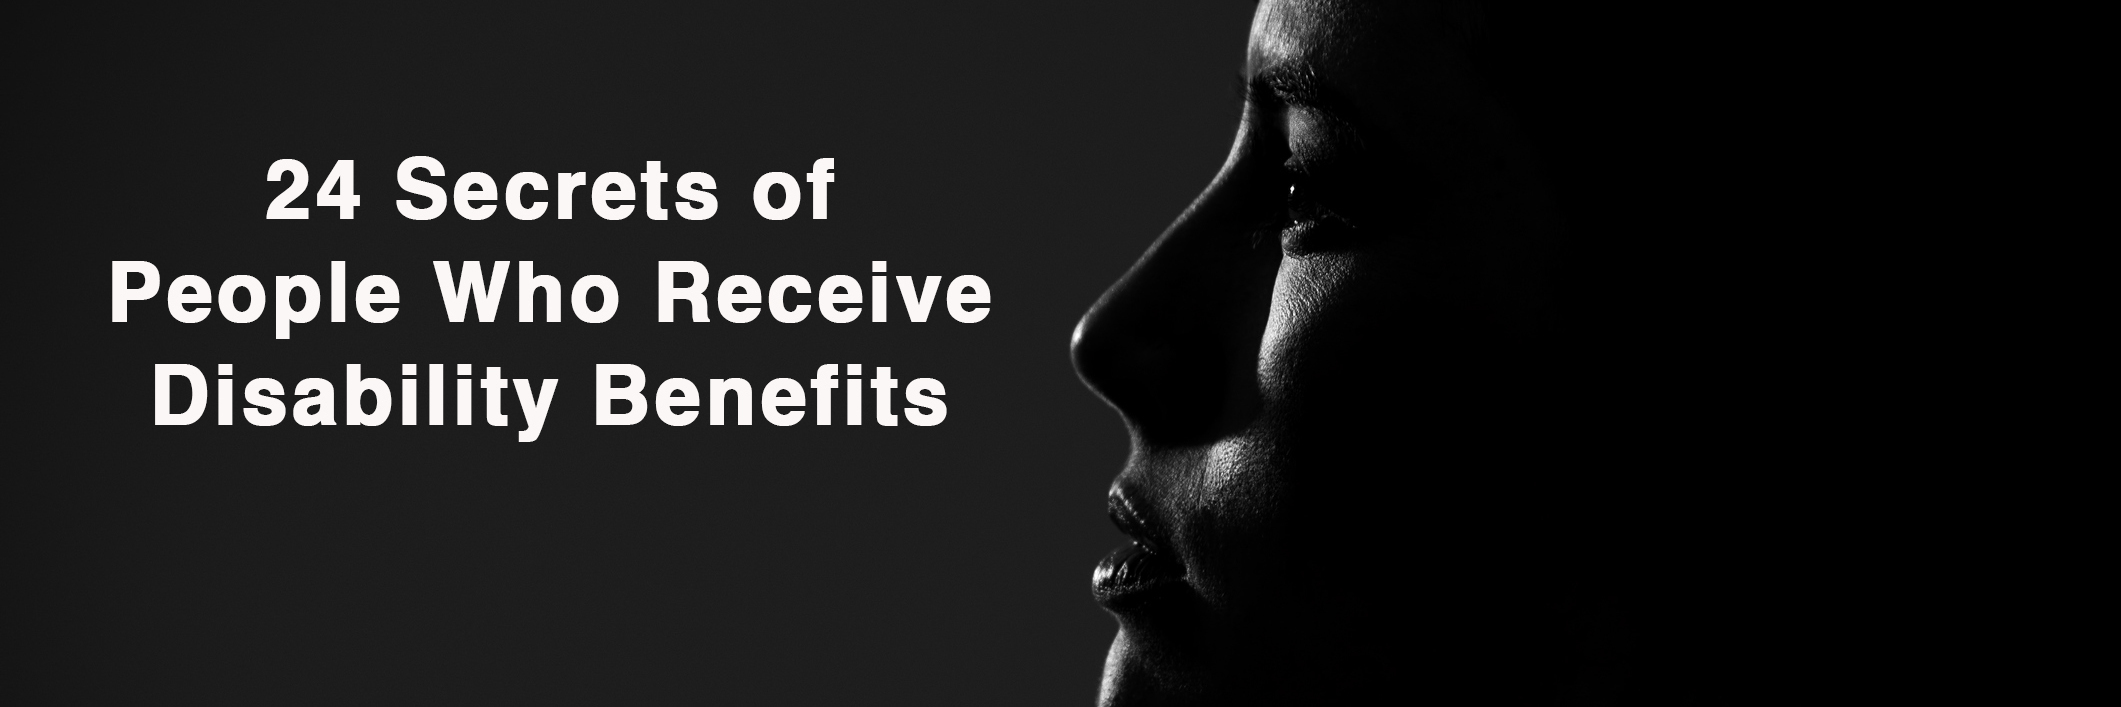 24 secrets of people who receive disability benefits